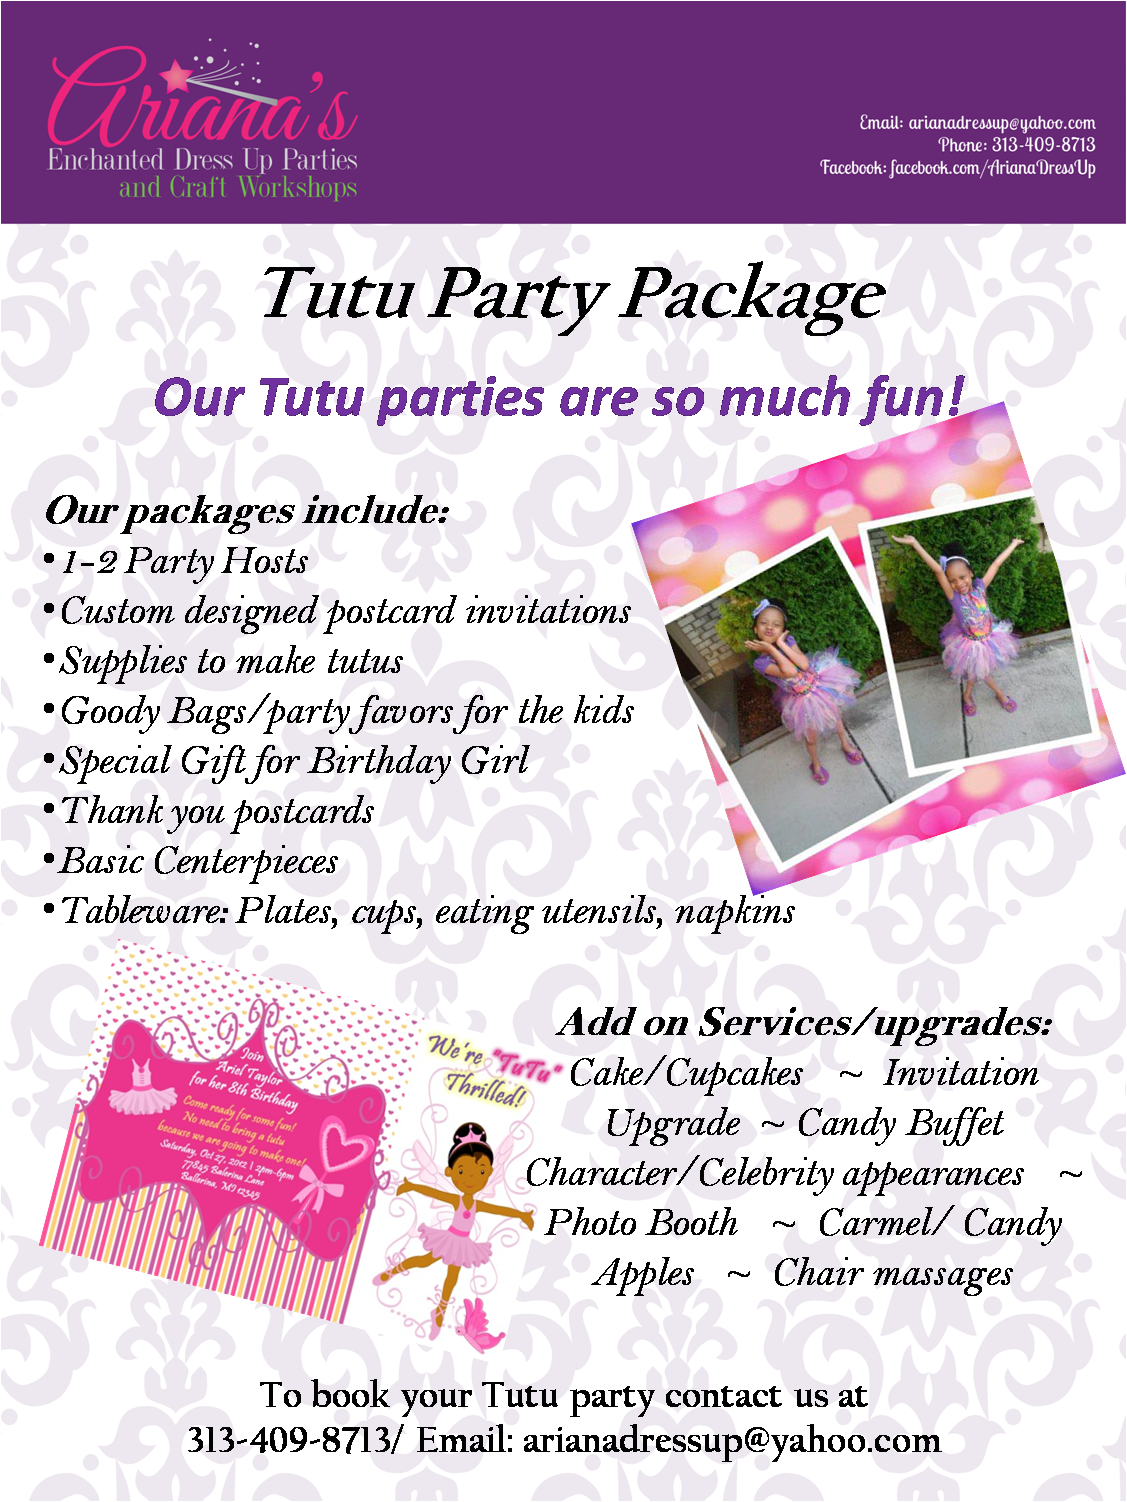 Tutu Party Package Party packages, Tutu party, Postcard